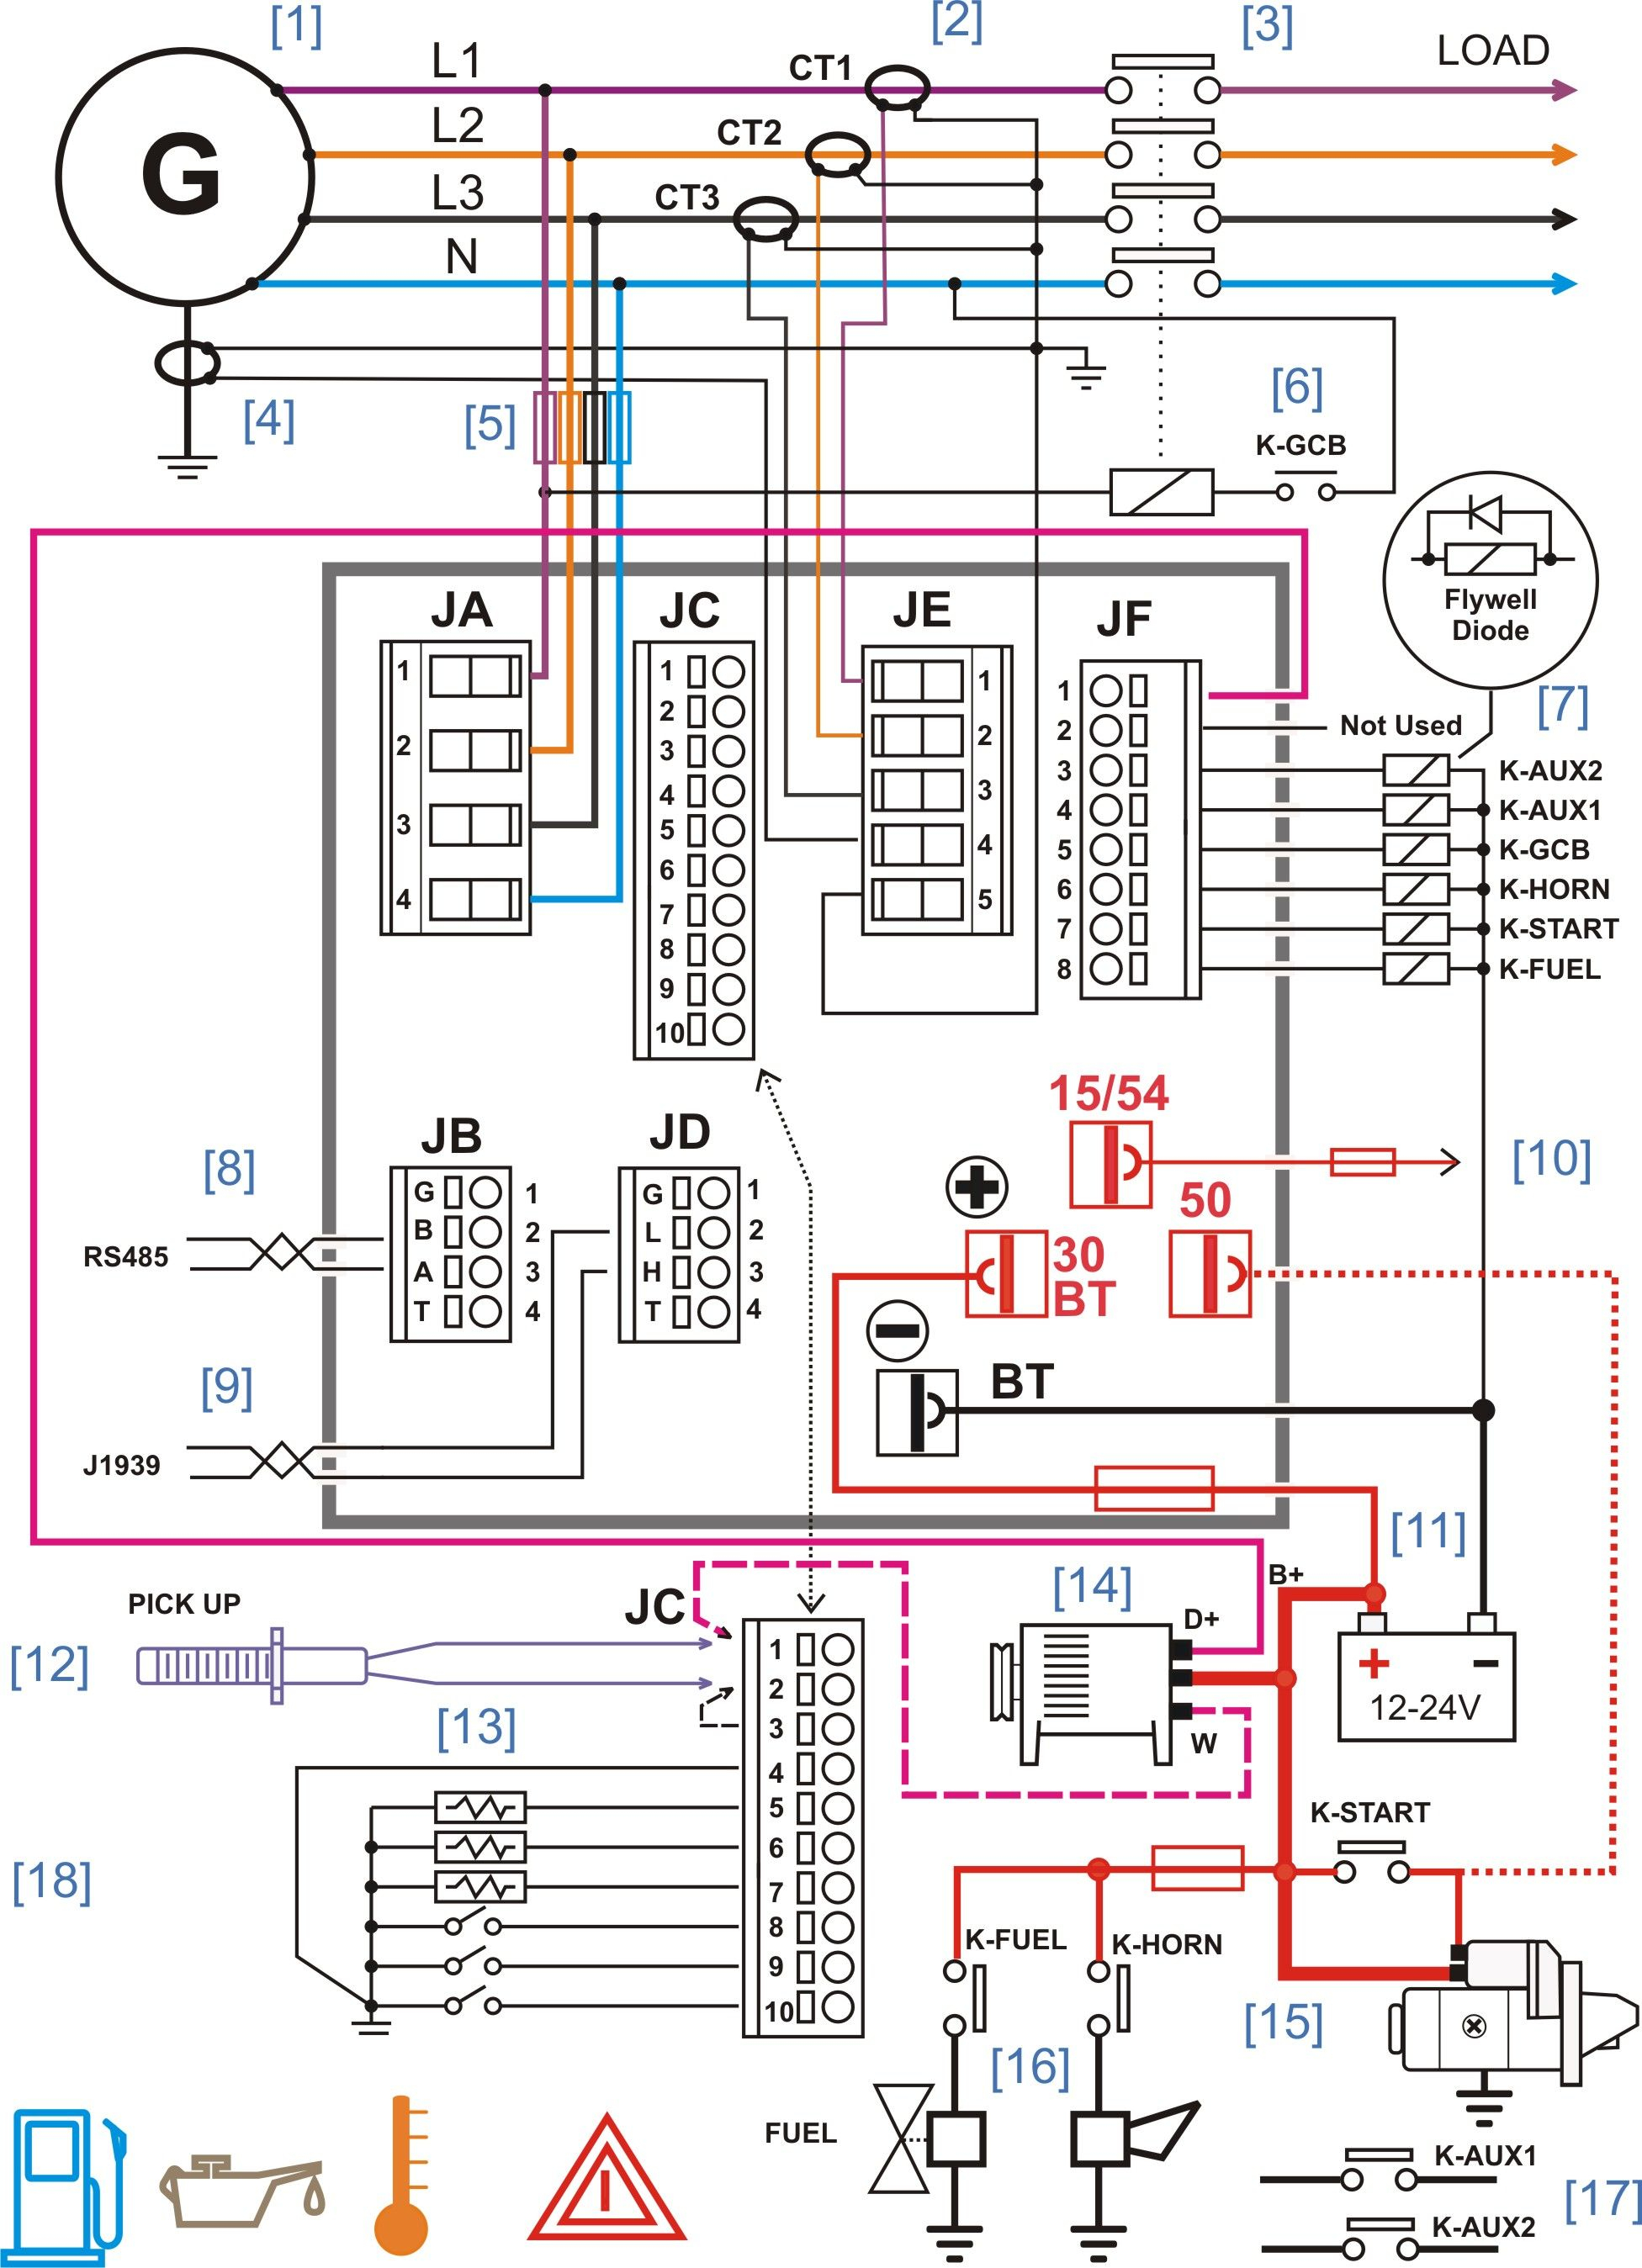 Generator wiring diagram and electrical schematics pdf download wiring diagram images detail name generator wiring diagram and electrical schematics pdf diesel generator control panel wiring diagram asfbconference2016